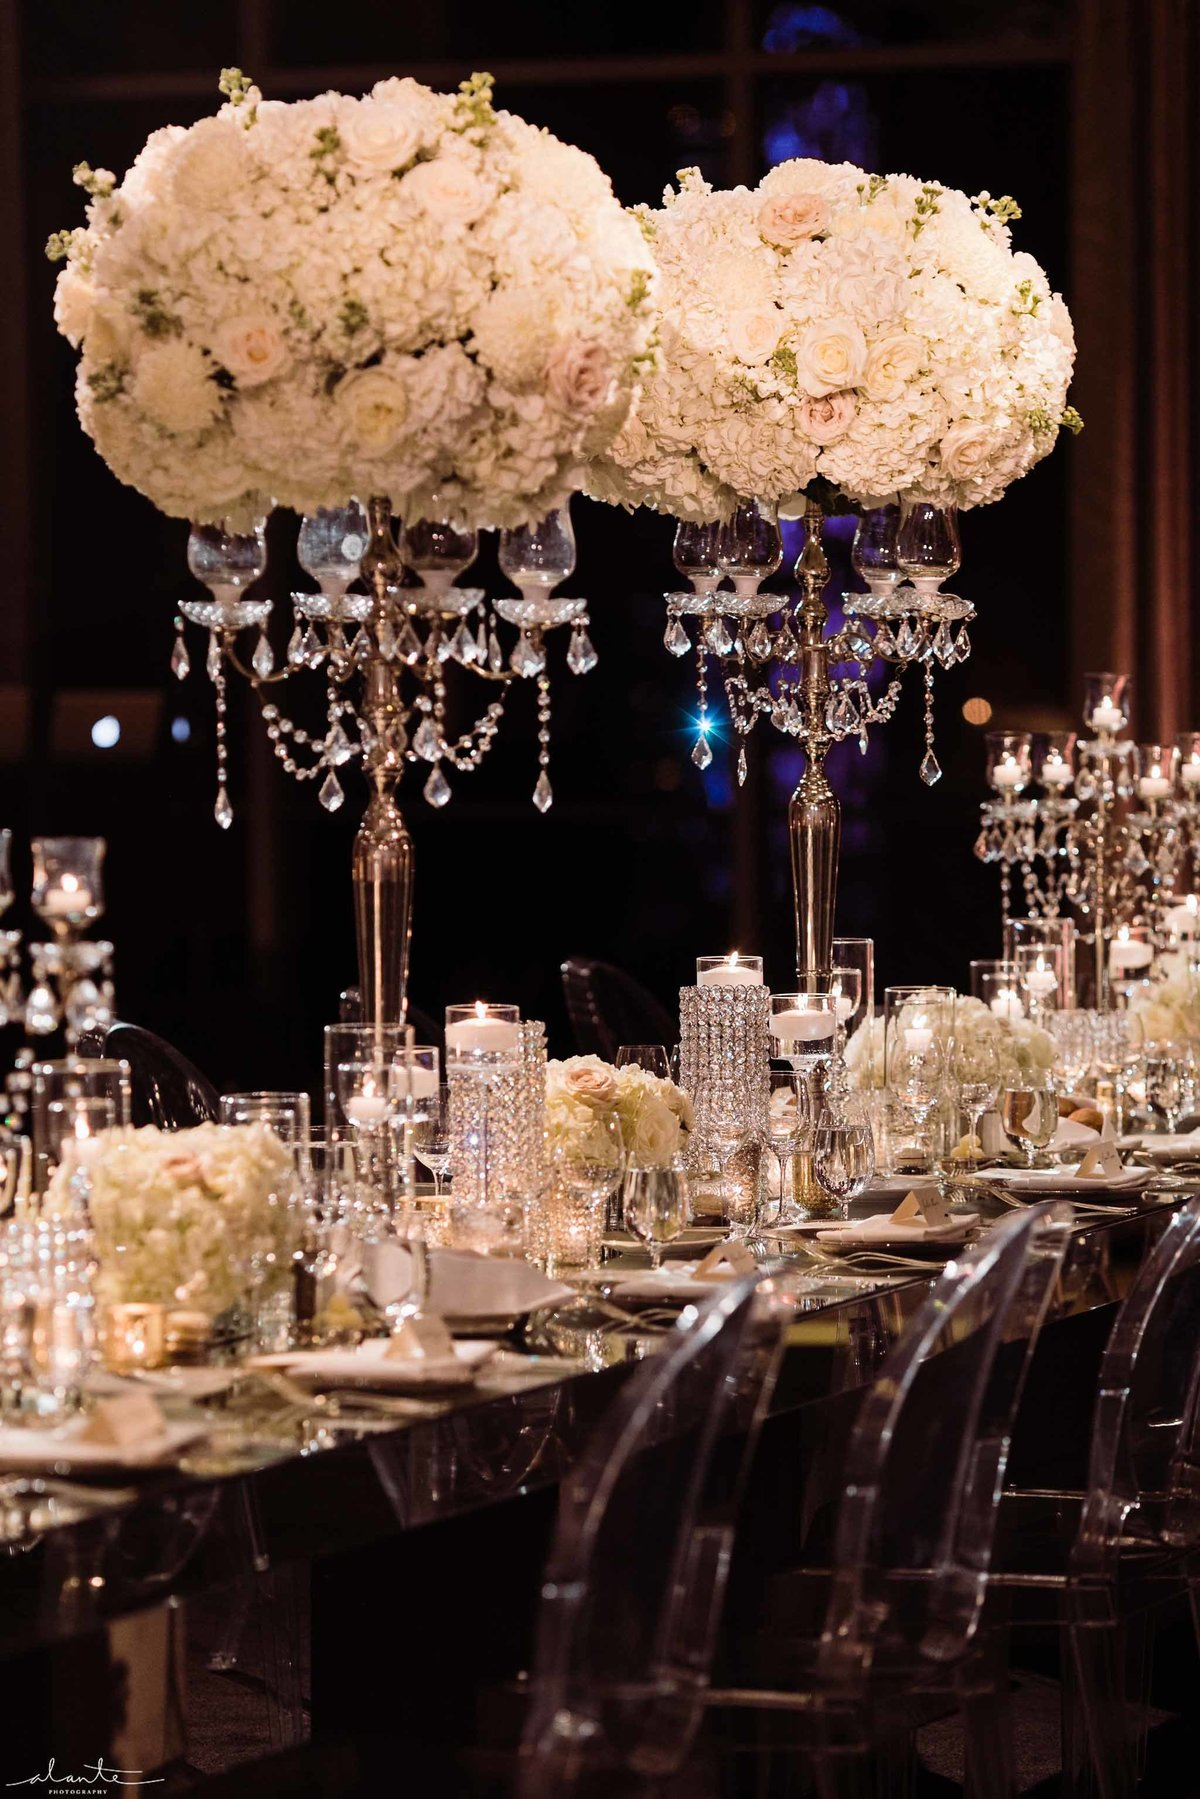 Flora Nova Design created these large white flower arrangements for a winter glam wedding head table with clear lucite chairs